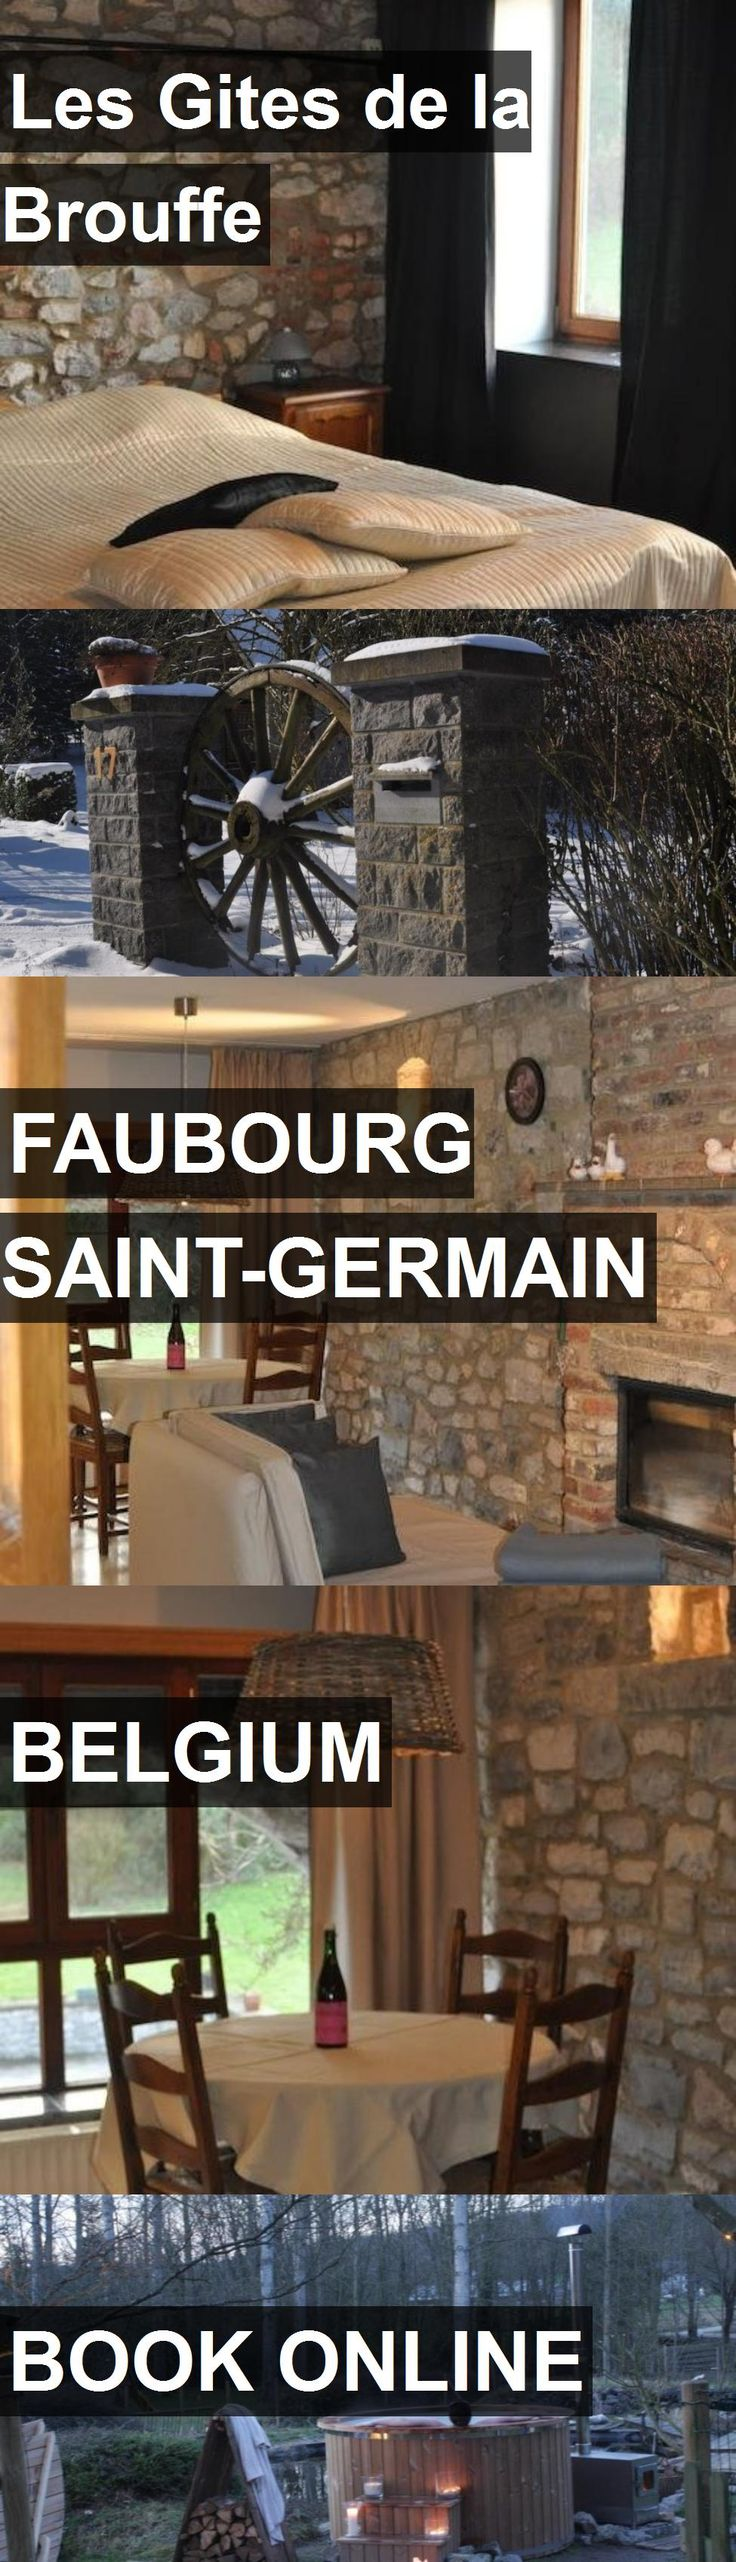 Hotel Les Gites de la Brouffe in Faubourg Saint-Germain, Belgium. For more information, photos, reviews and best prices please follow the link. #Belgium #FaubourgSaint-Germain #LesGitesdelaBrouffe #hotel #travel #vacation